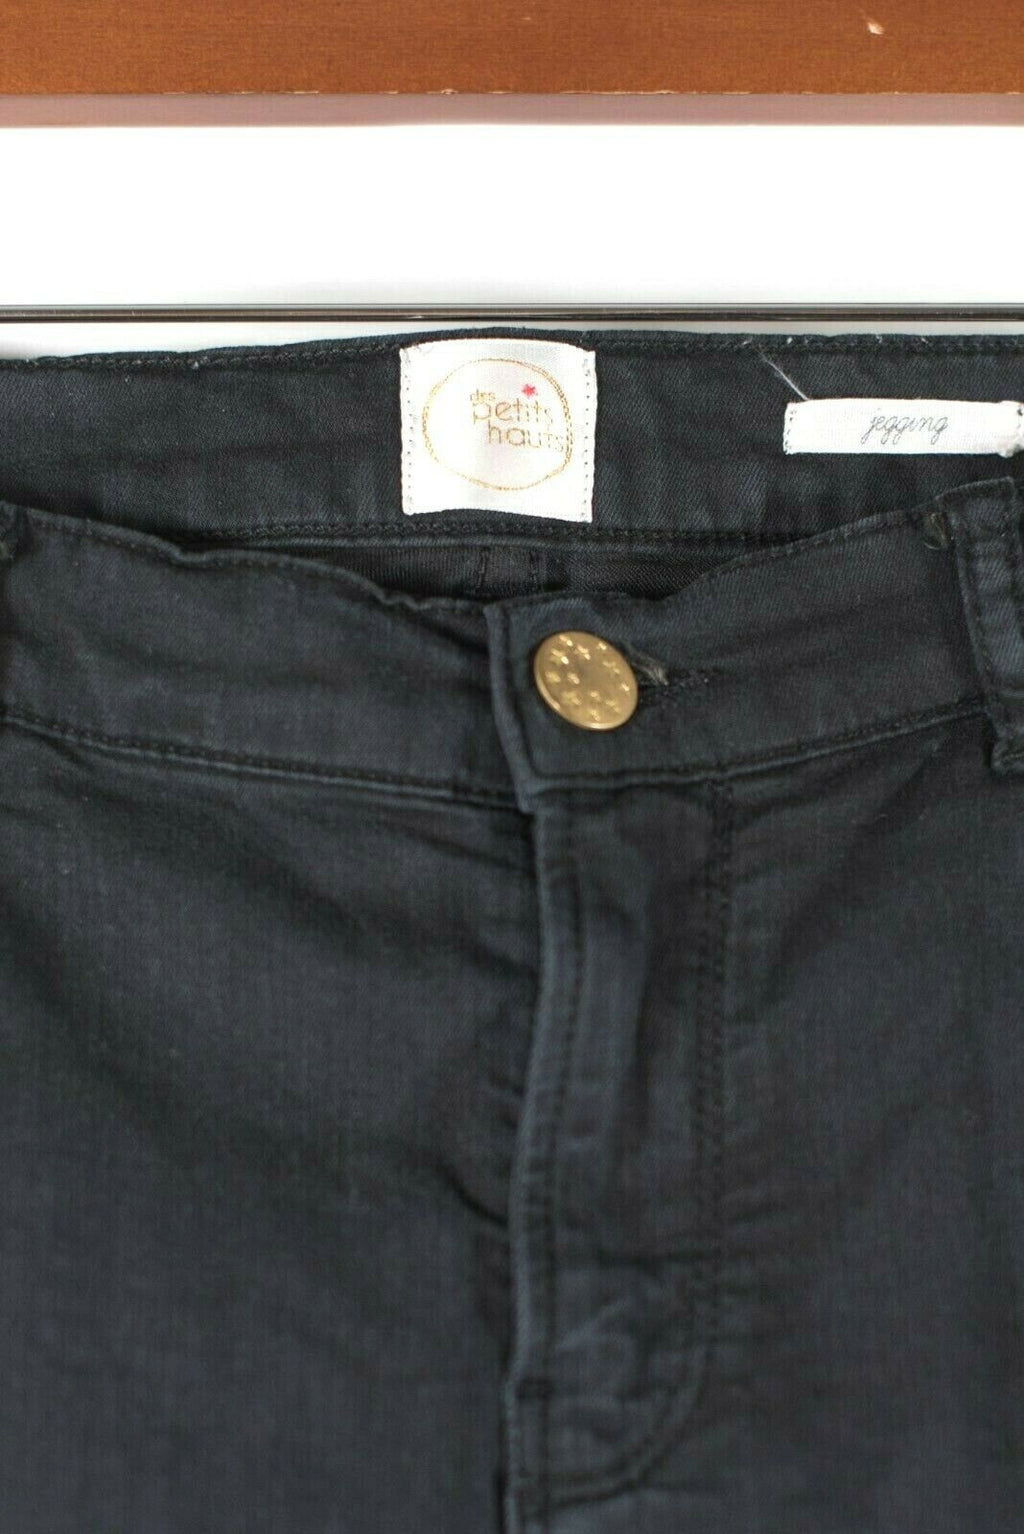 Anthropologie Des Petits Hauts Womens Size 29 Medium Black Skinny Jegging Pants